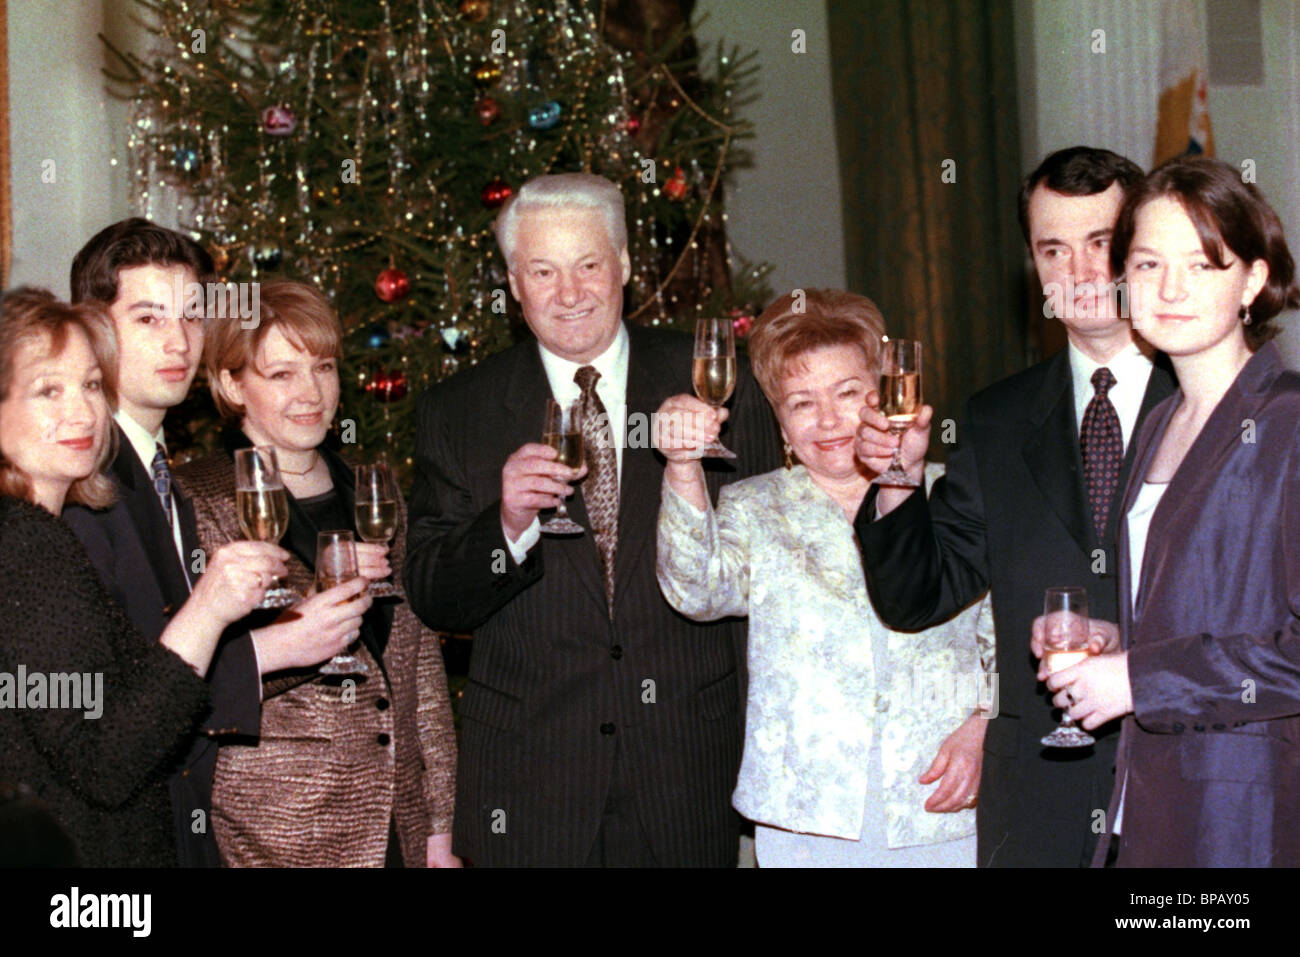 Russian president boris yeltsin and his family new year greetings russian president boris yeltsin and his family new year greetings kristyandbryce Images